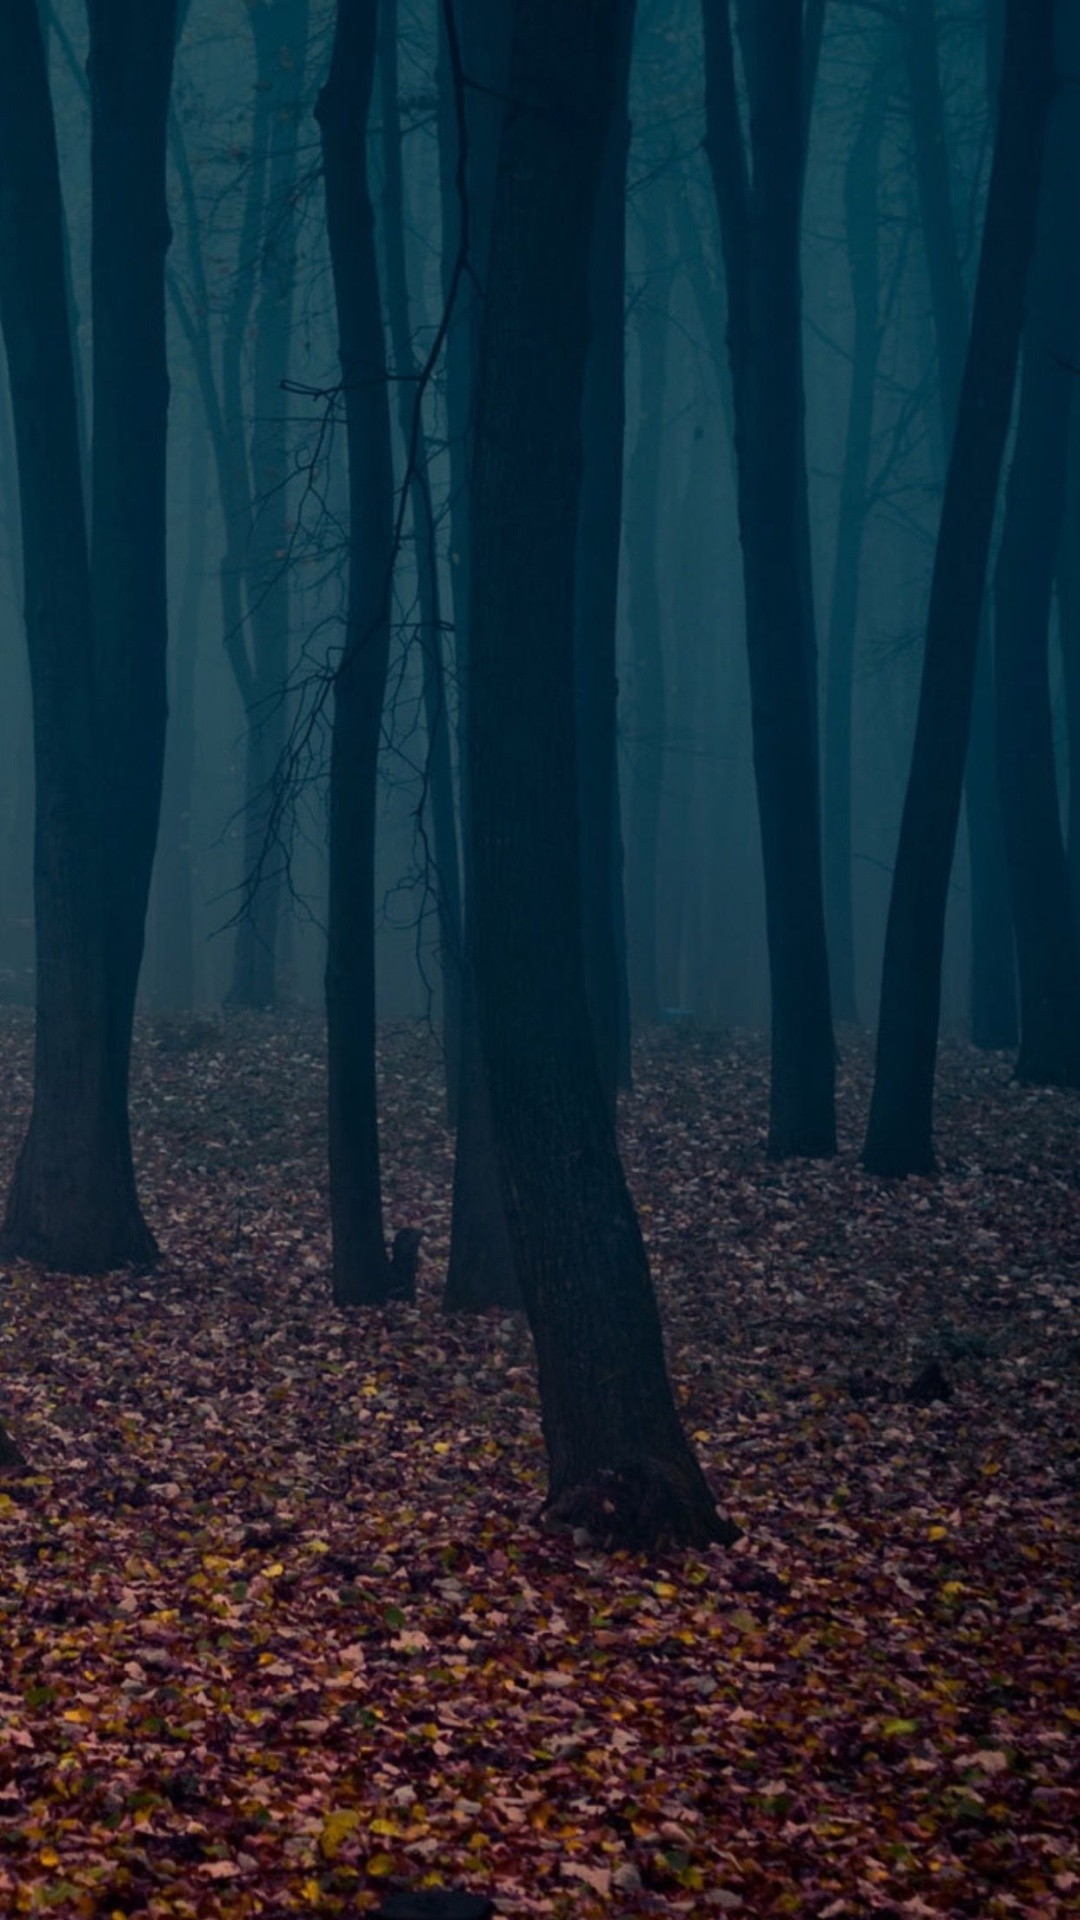 Spooky Autumn Forest Leafbed Iphone 6 Plus Hd Wallpaper - Spooky Wallpapers For Phone - HD Wallpaper